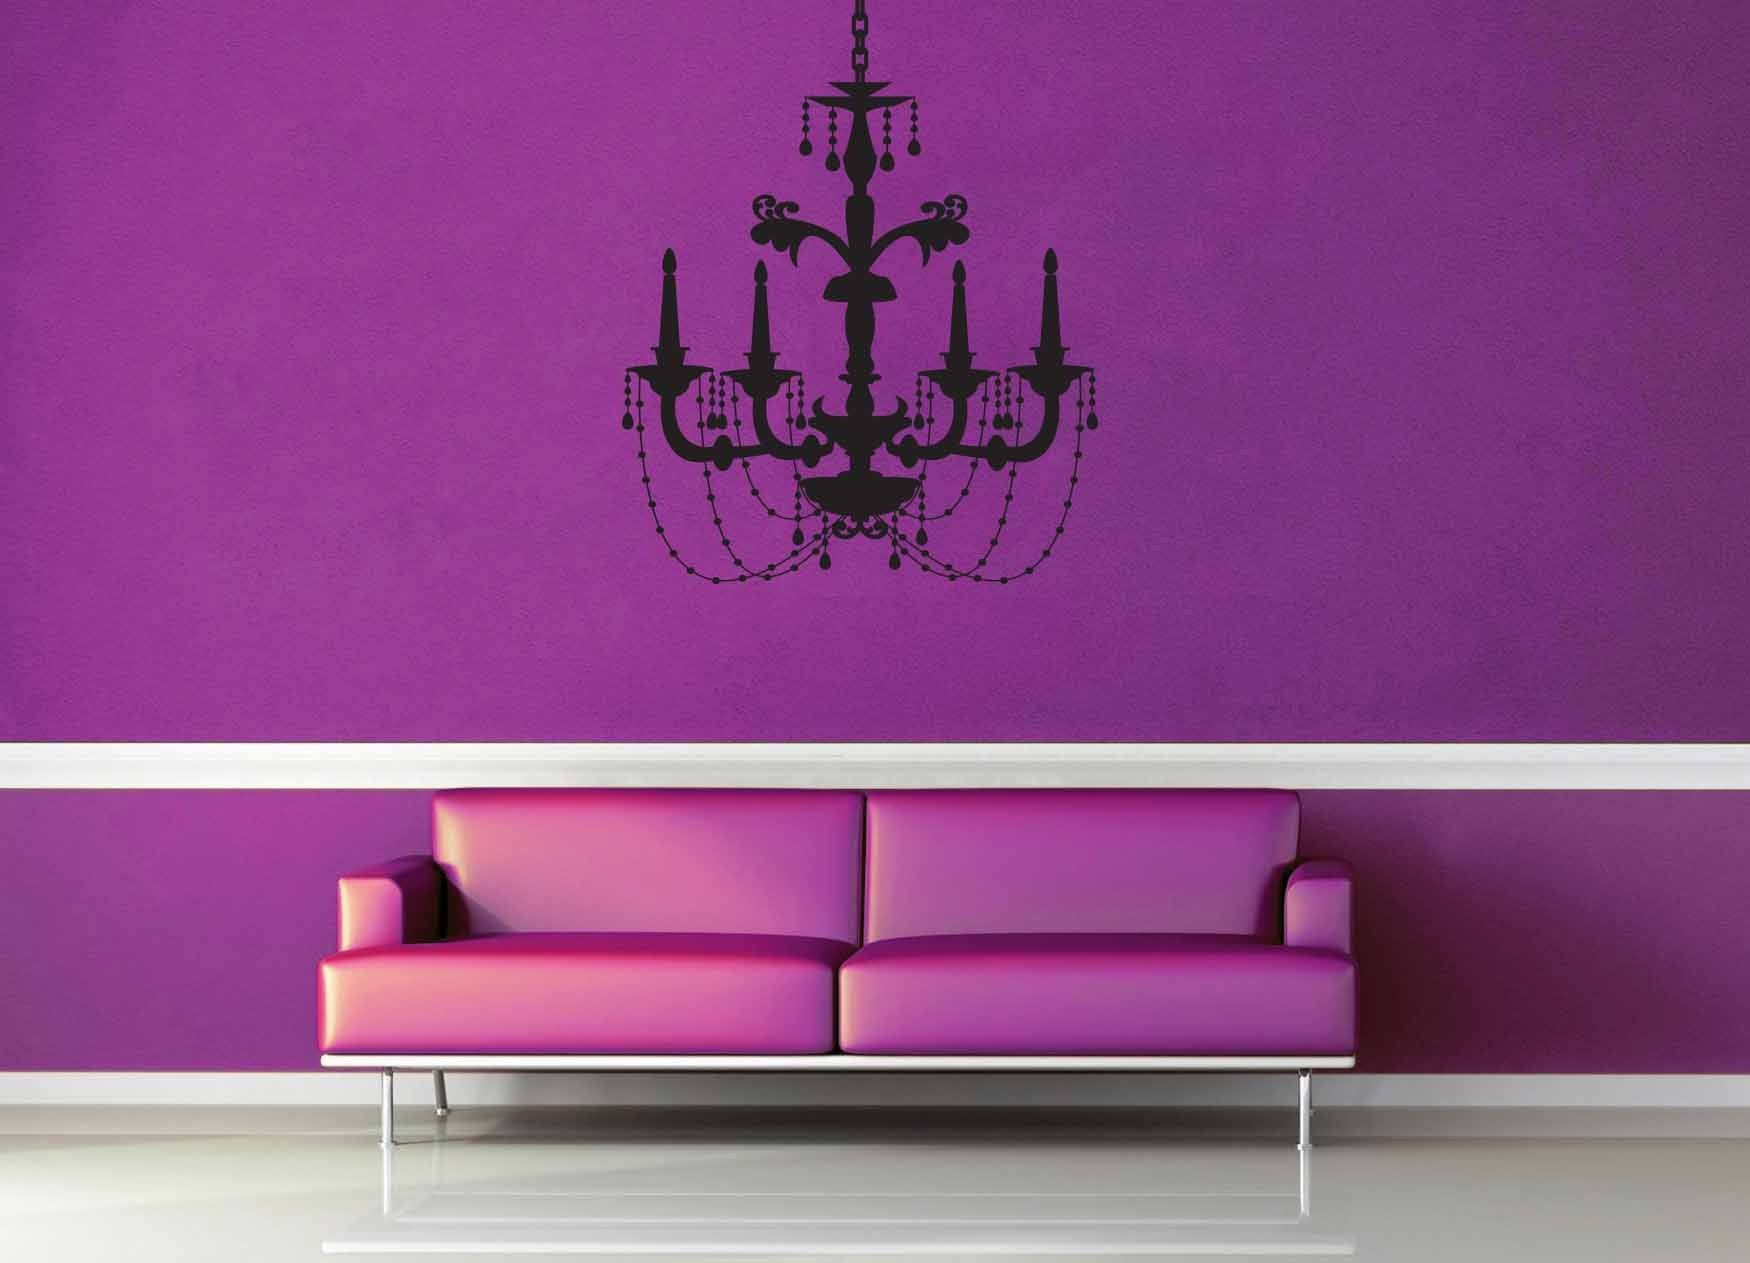 Chandelier - Wall Decal - No 4